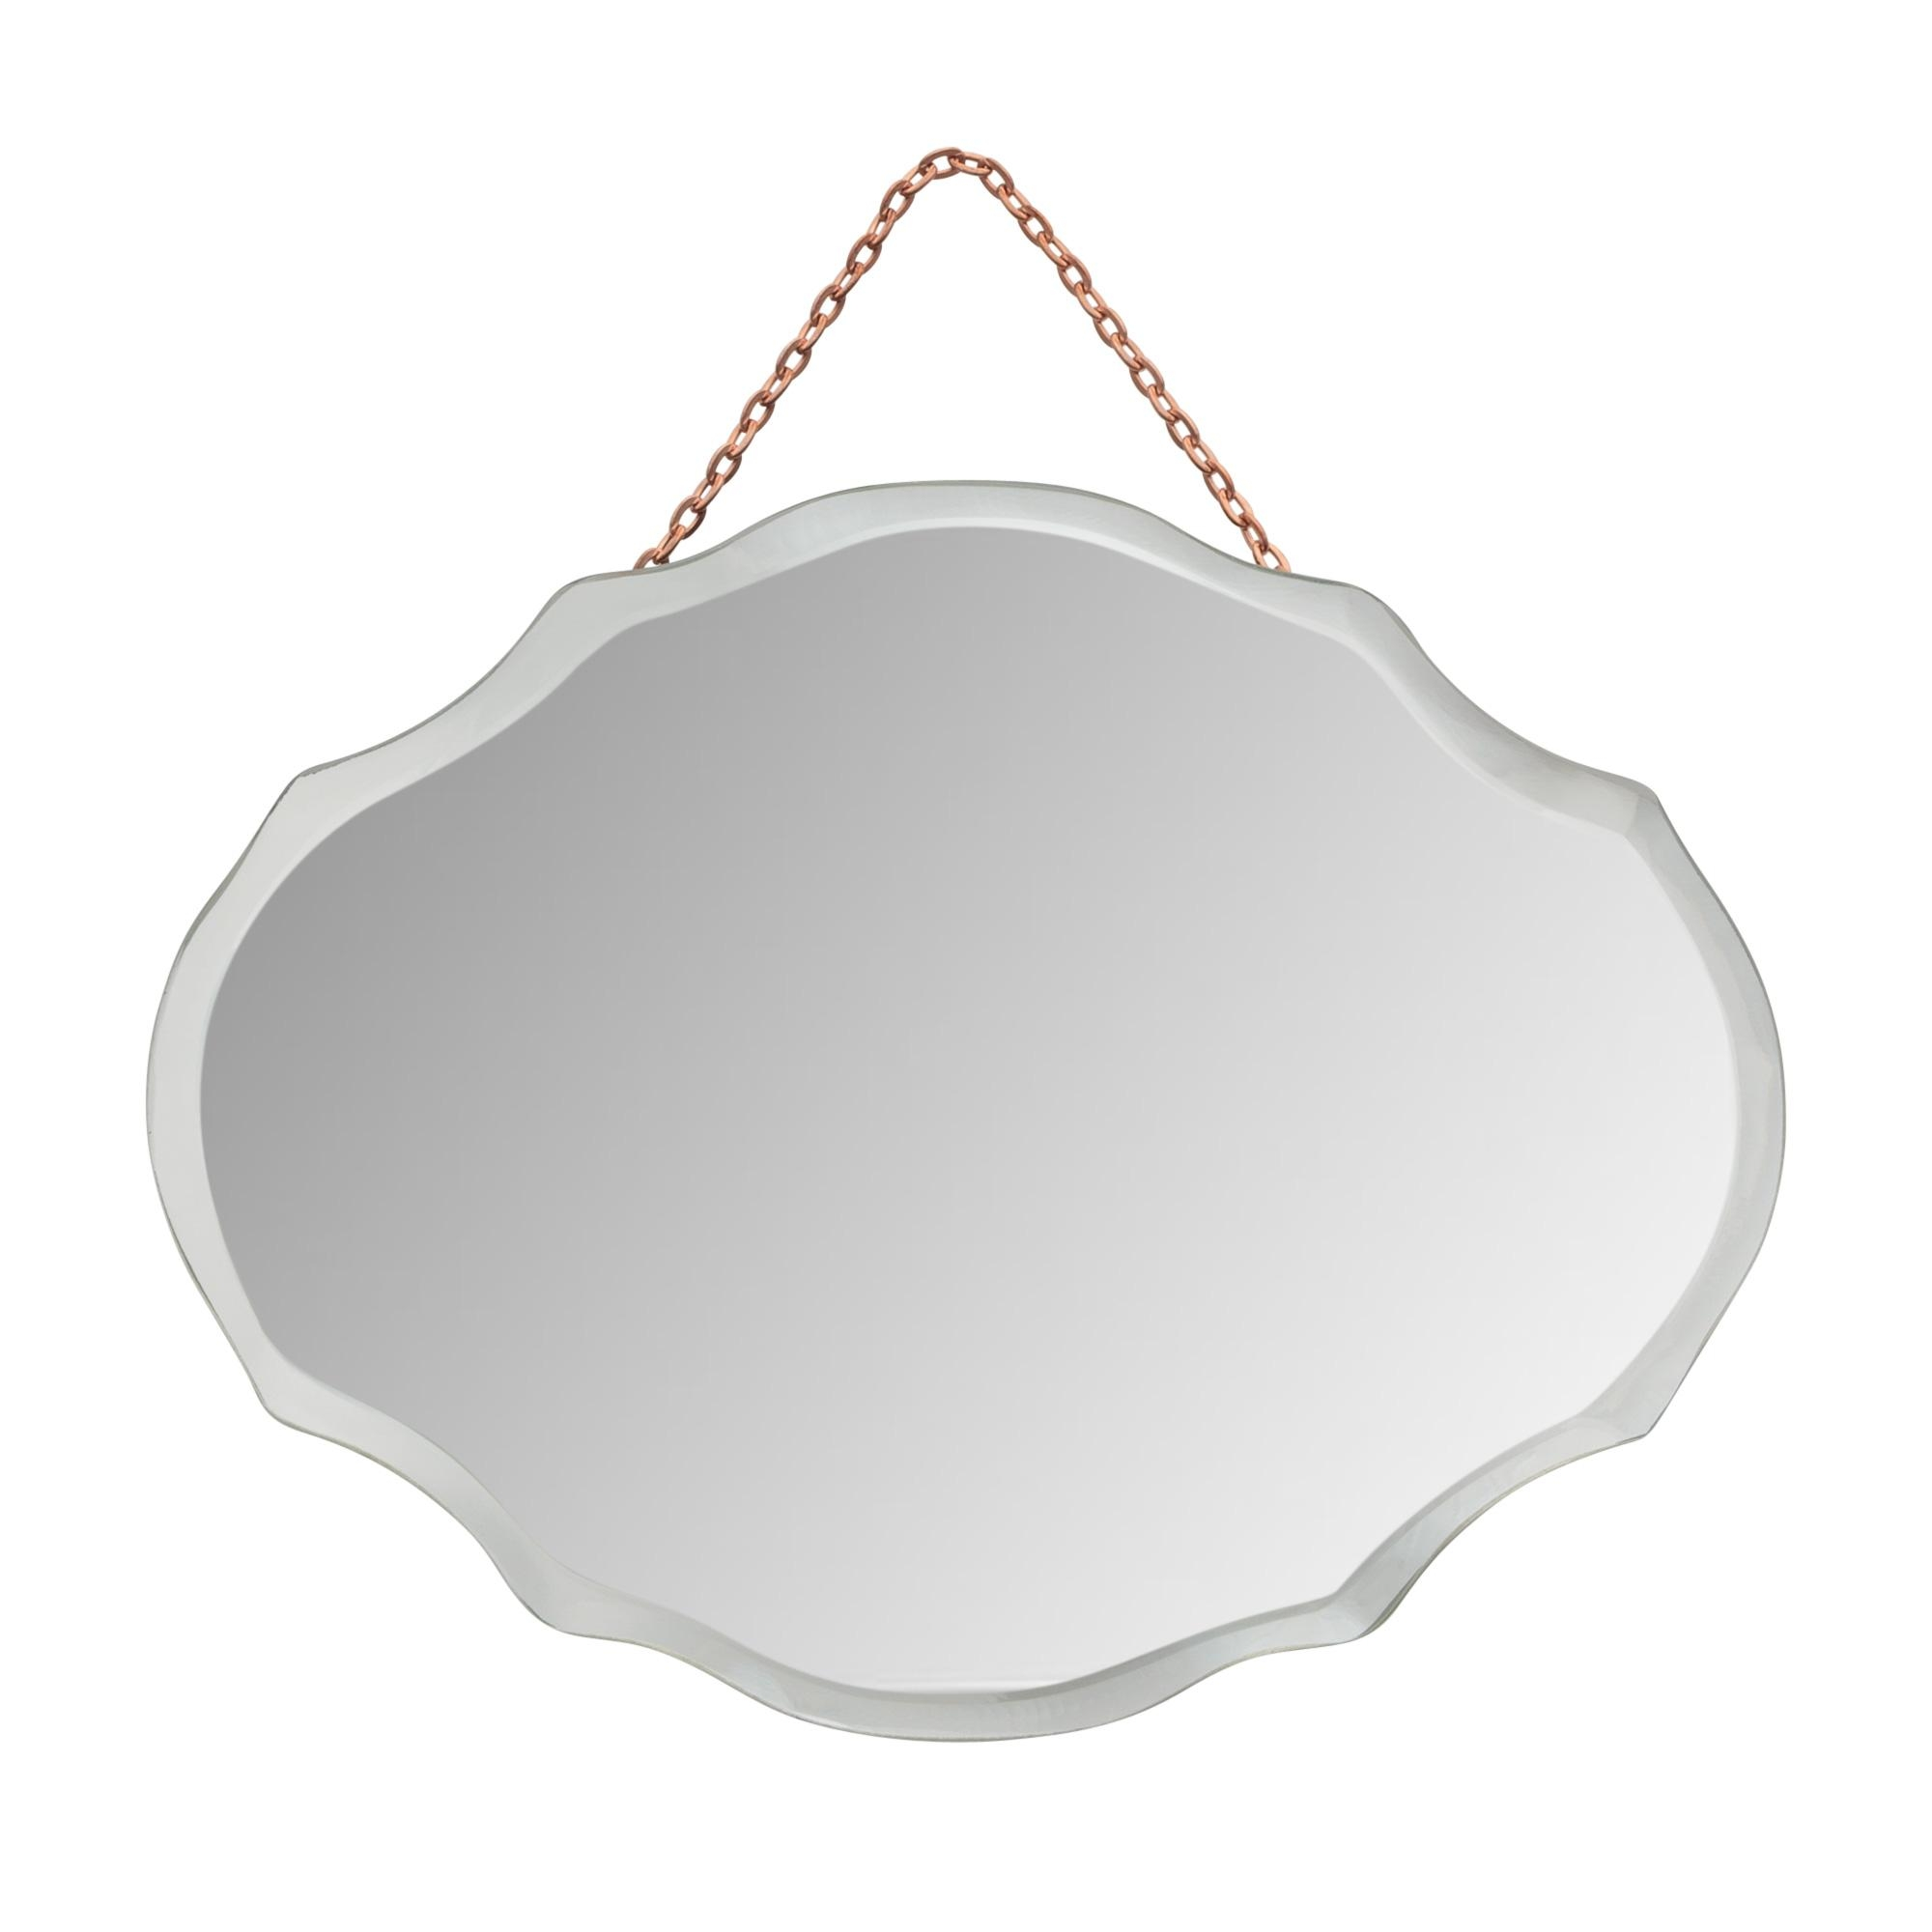 Mini Oval Art Deco Mirror | Oliver Bonas In Artdeco Mirrors (Image 18 of 20)